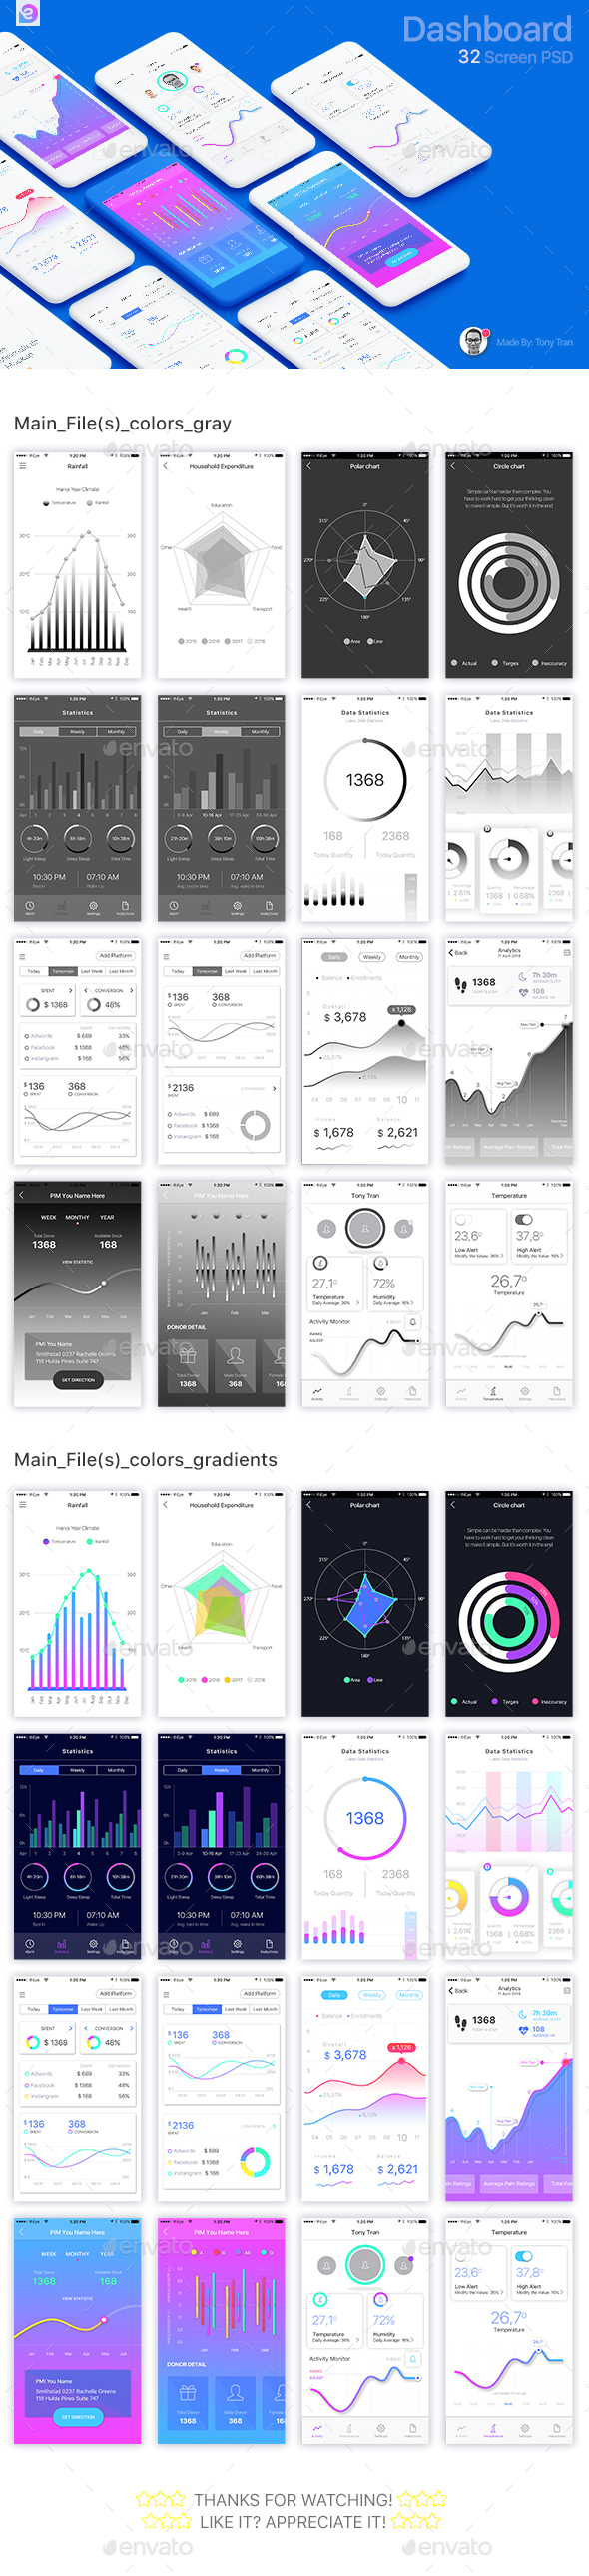 Coloristic: iOS/Android UI Kit (60 App Screens) (User Interfaces)